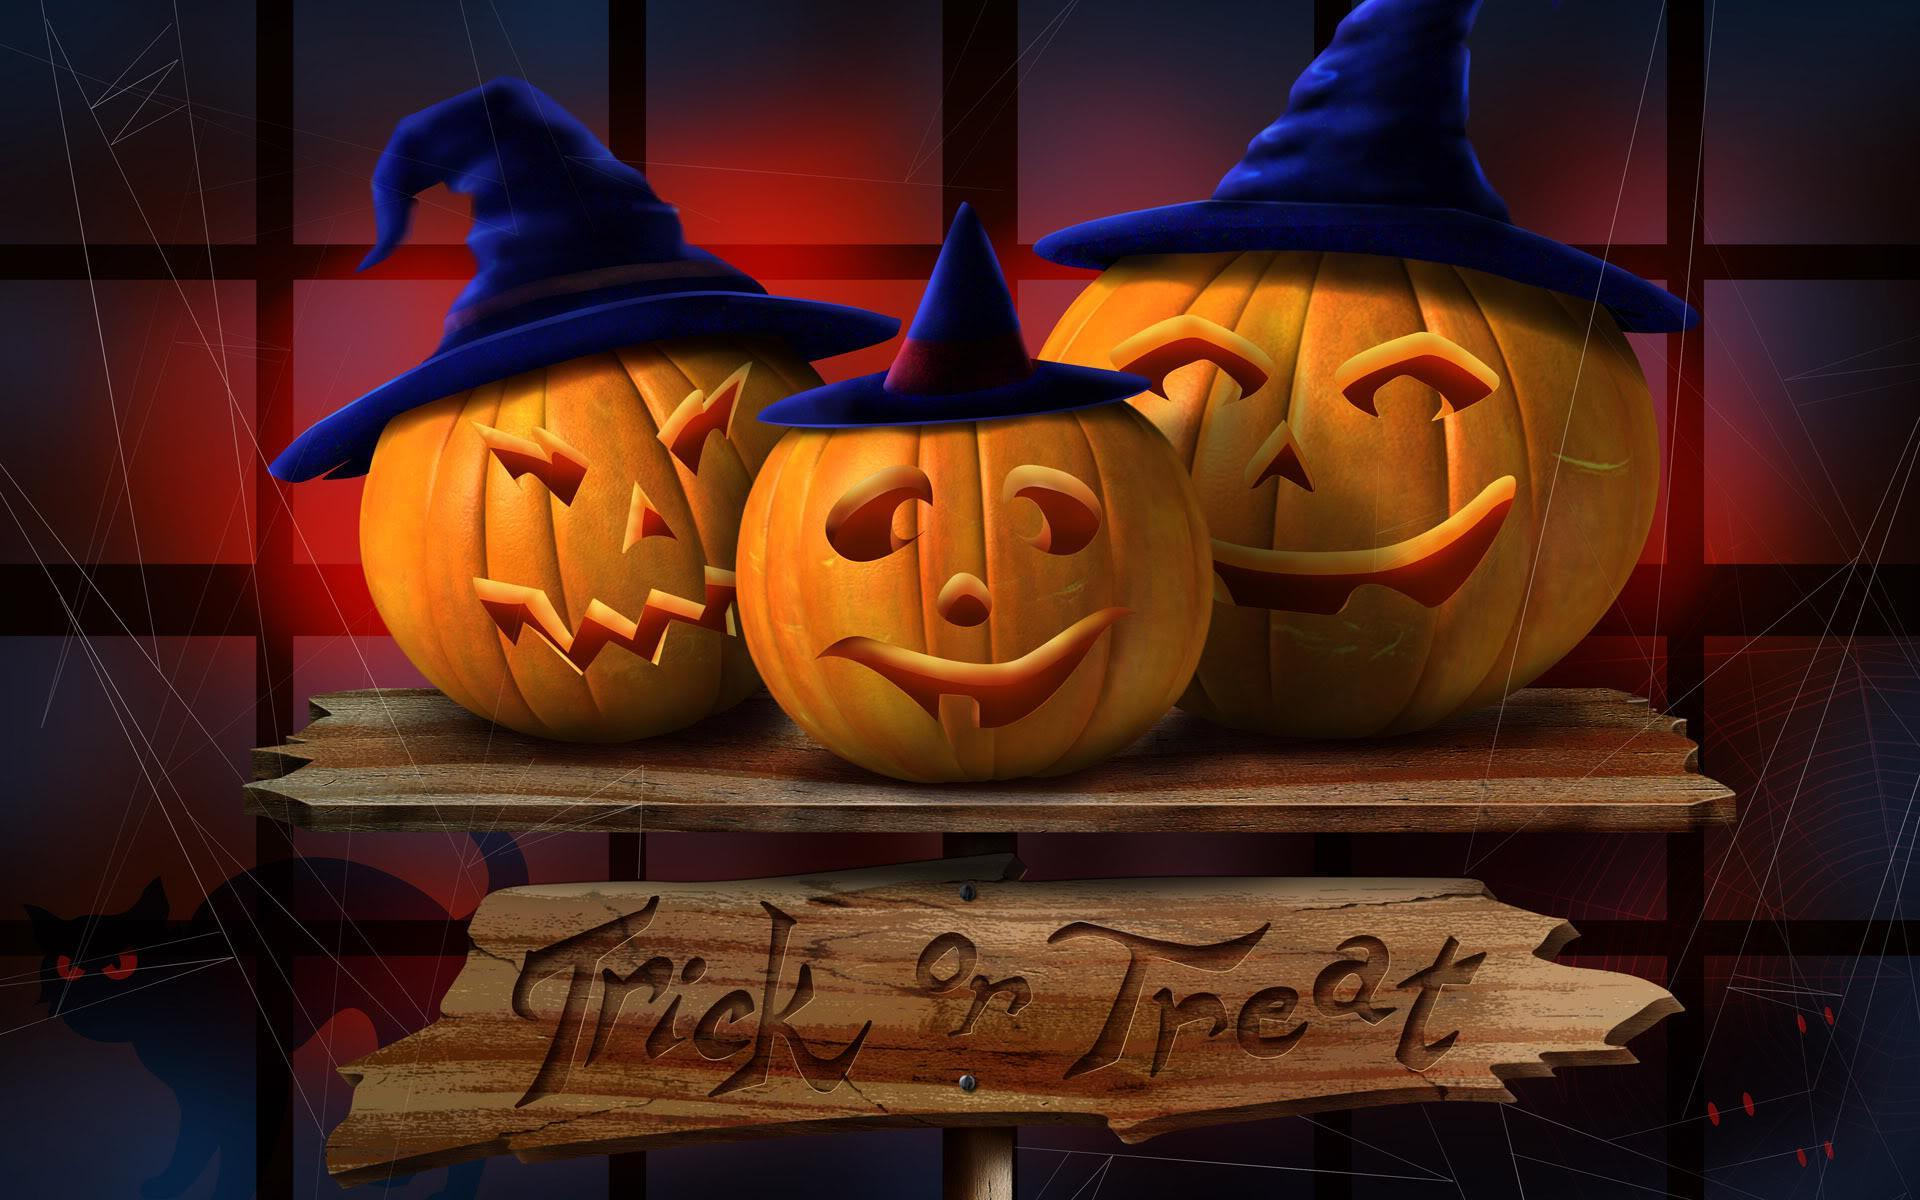 Lights-of-Halloween-Pumpkins-Wallpaper-Background